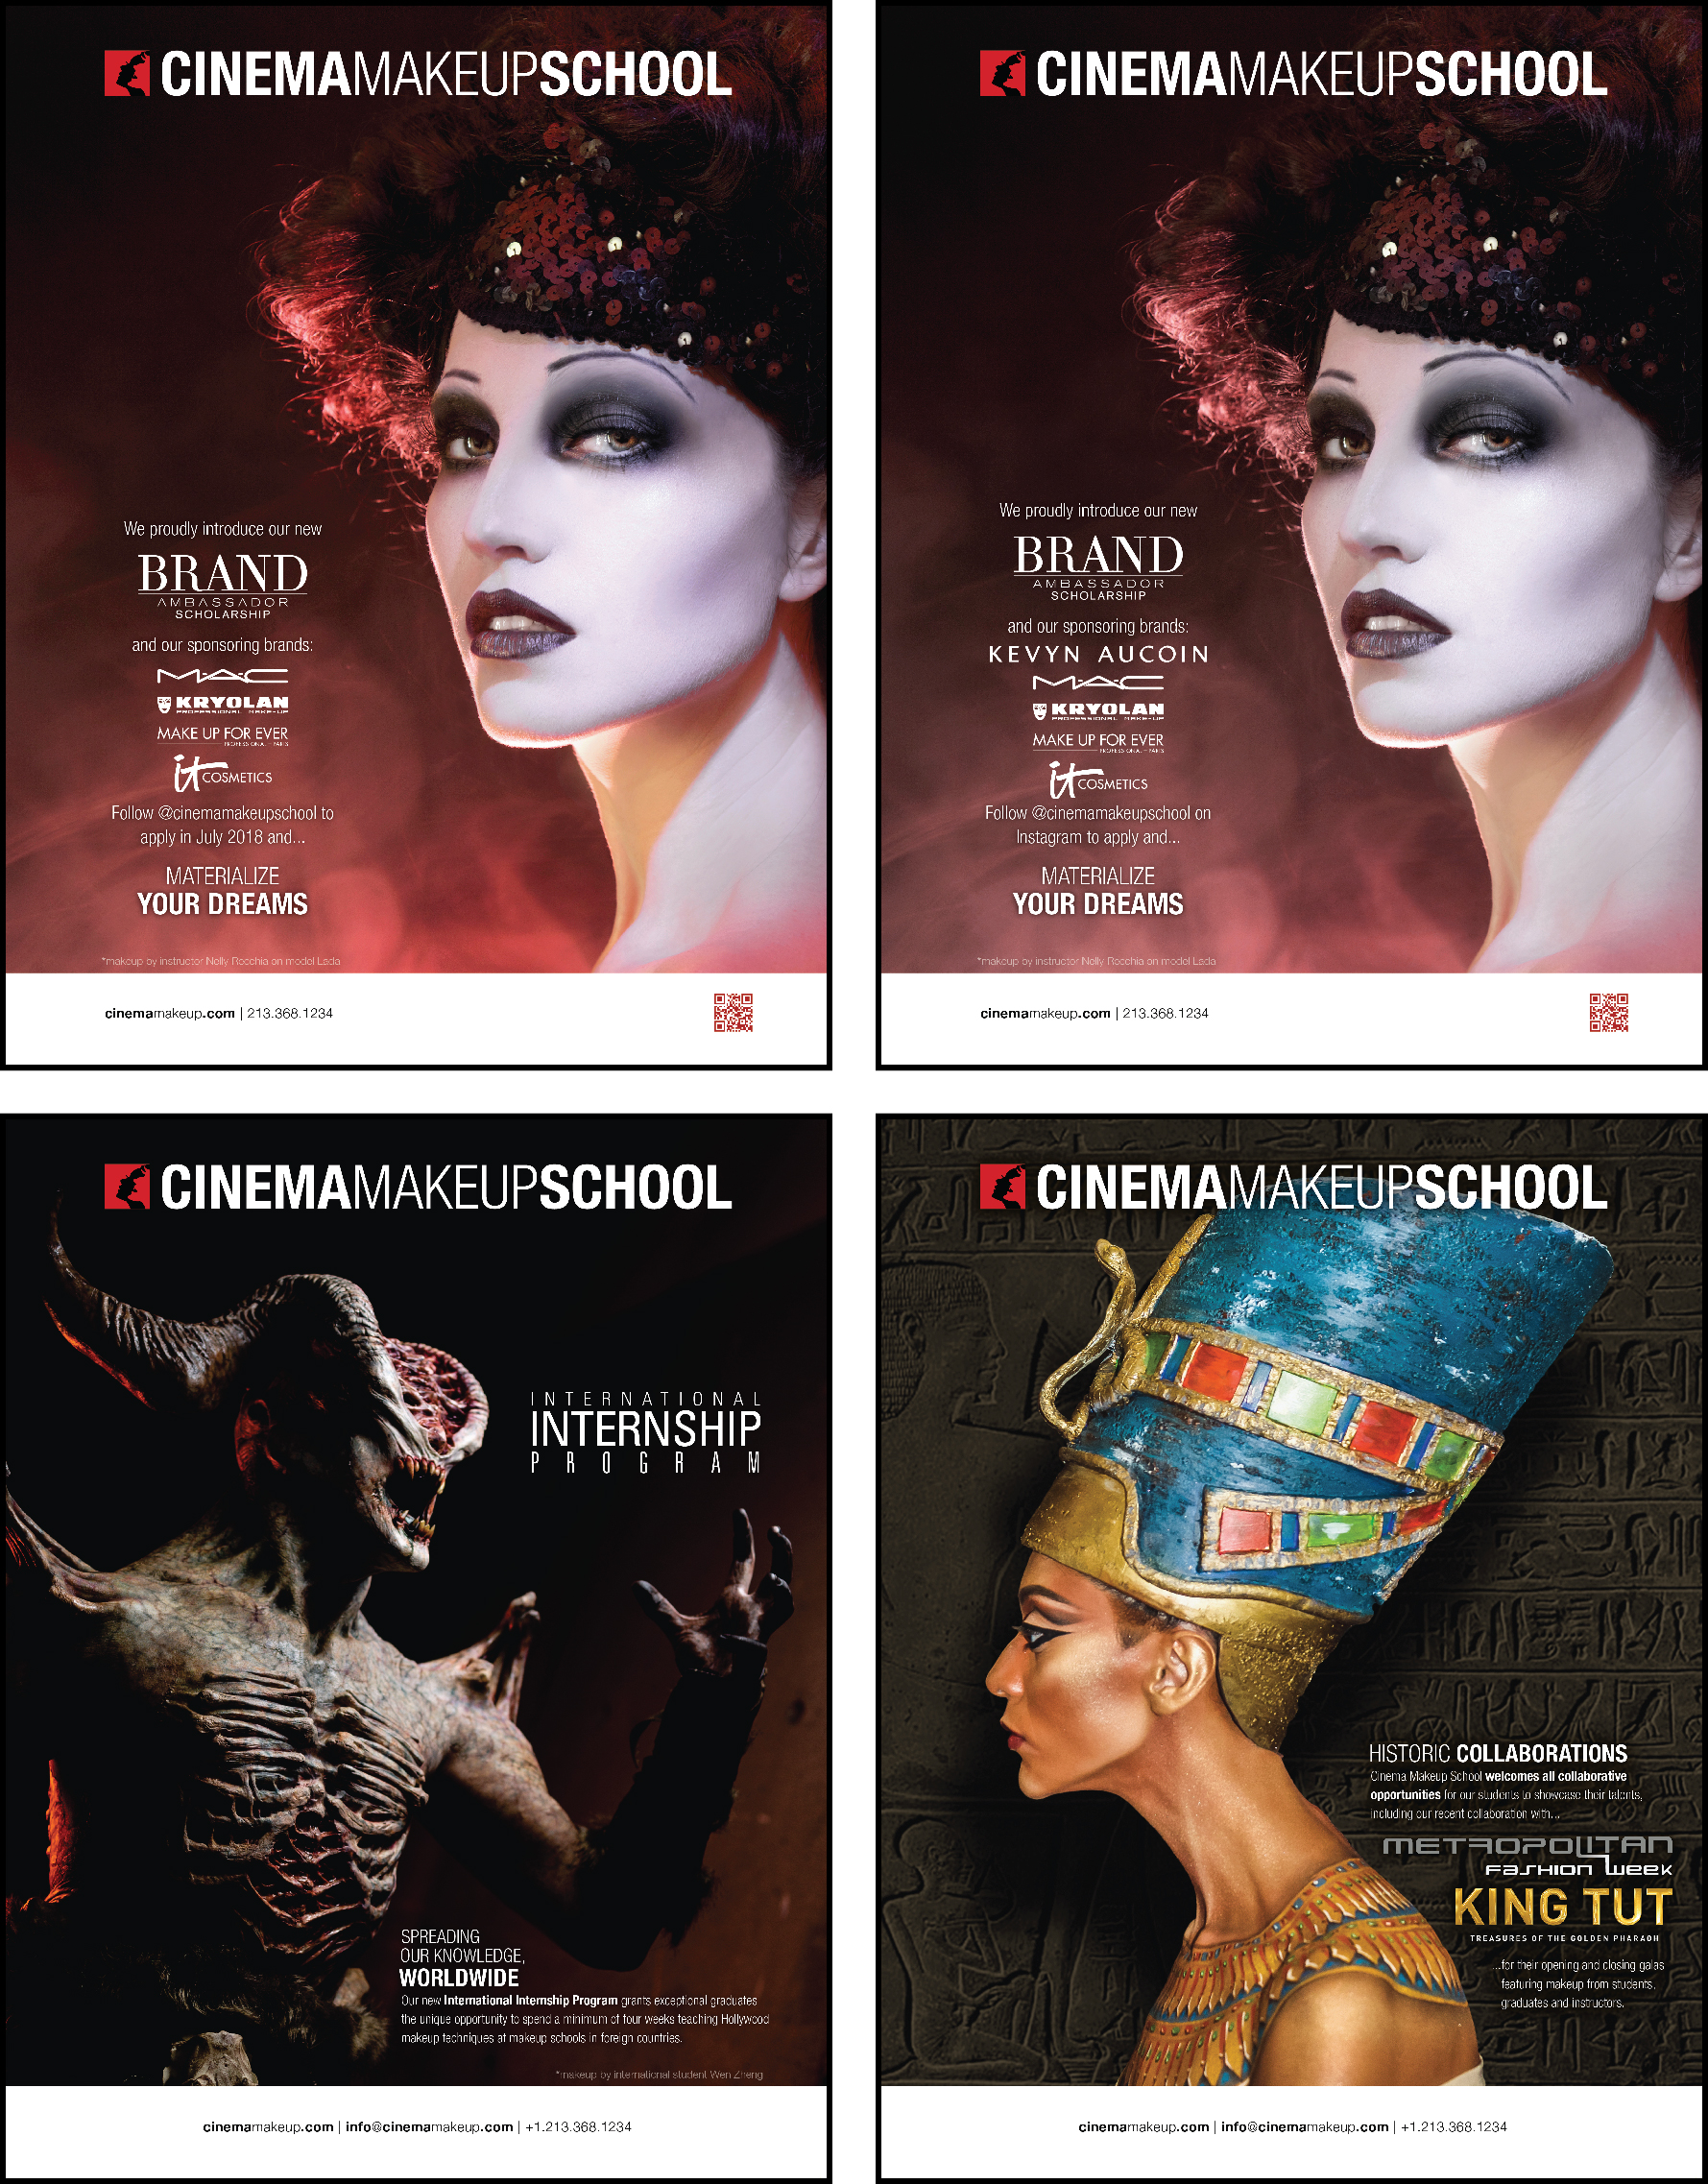 Cinema Makeup School Makeup Artist Magazine Ads